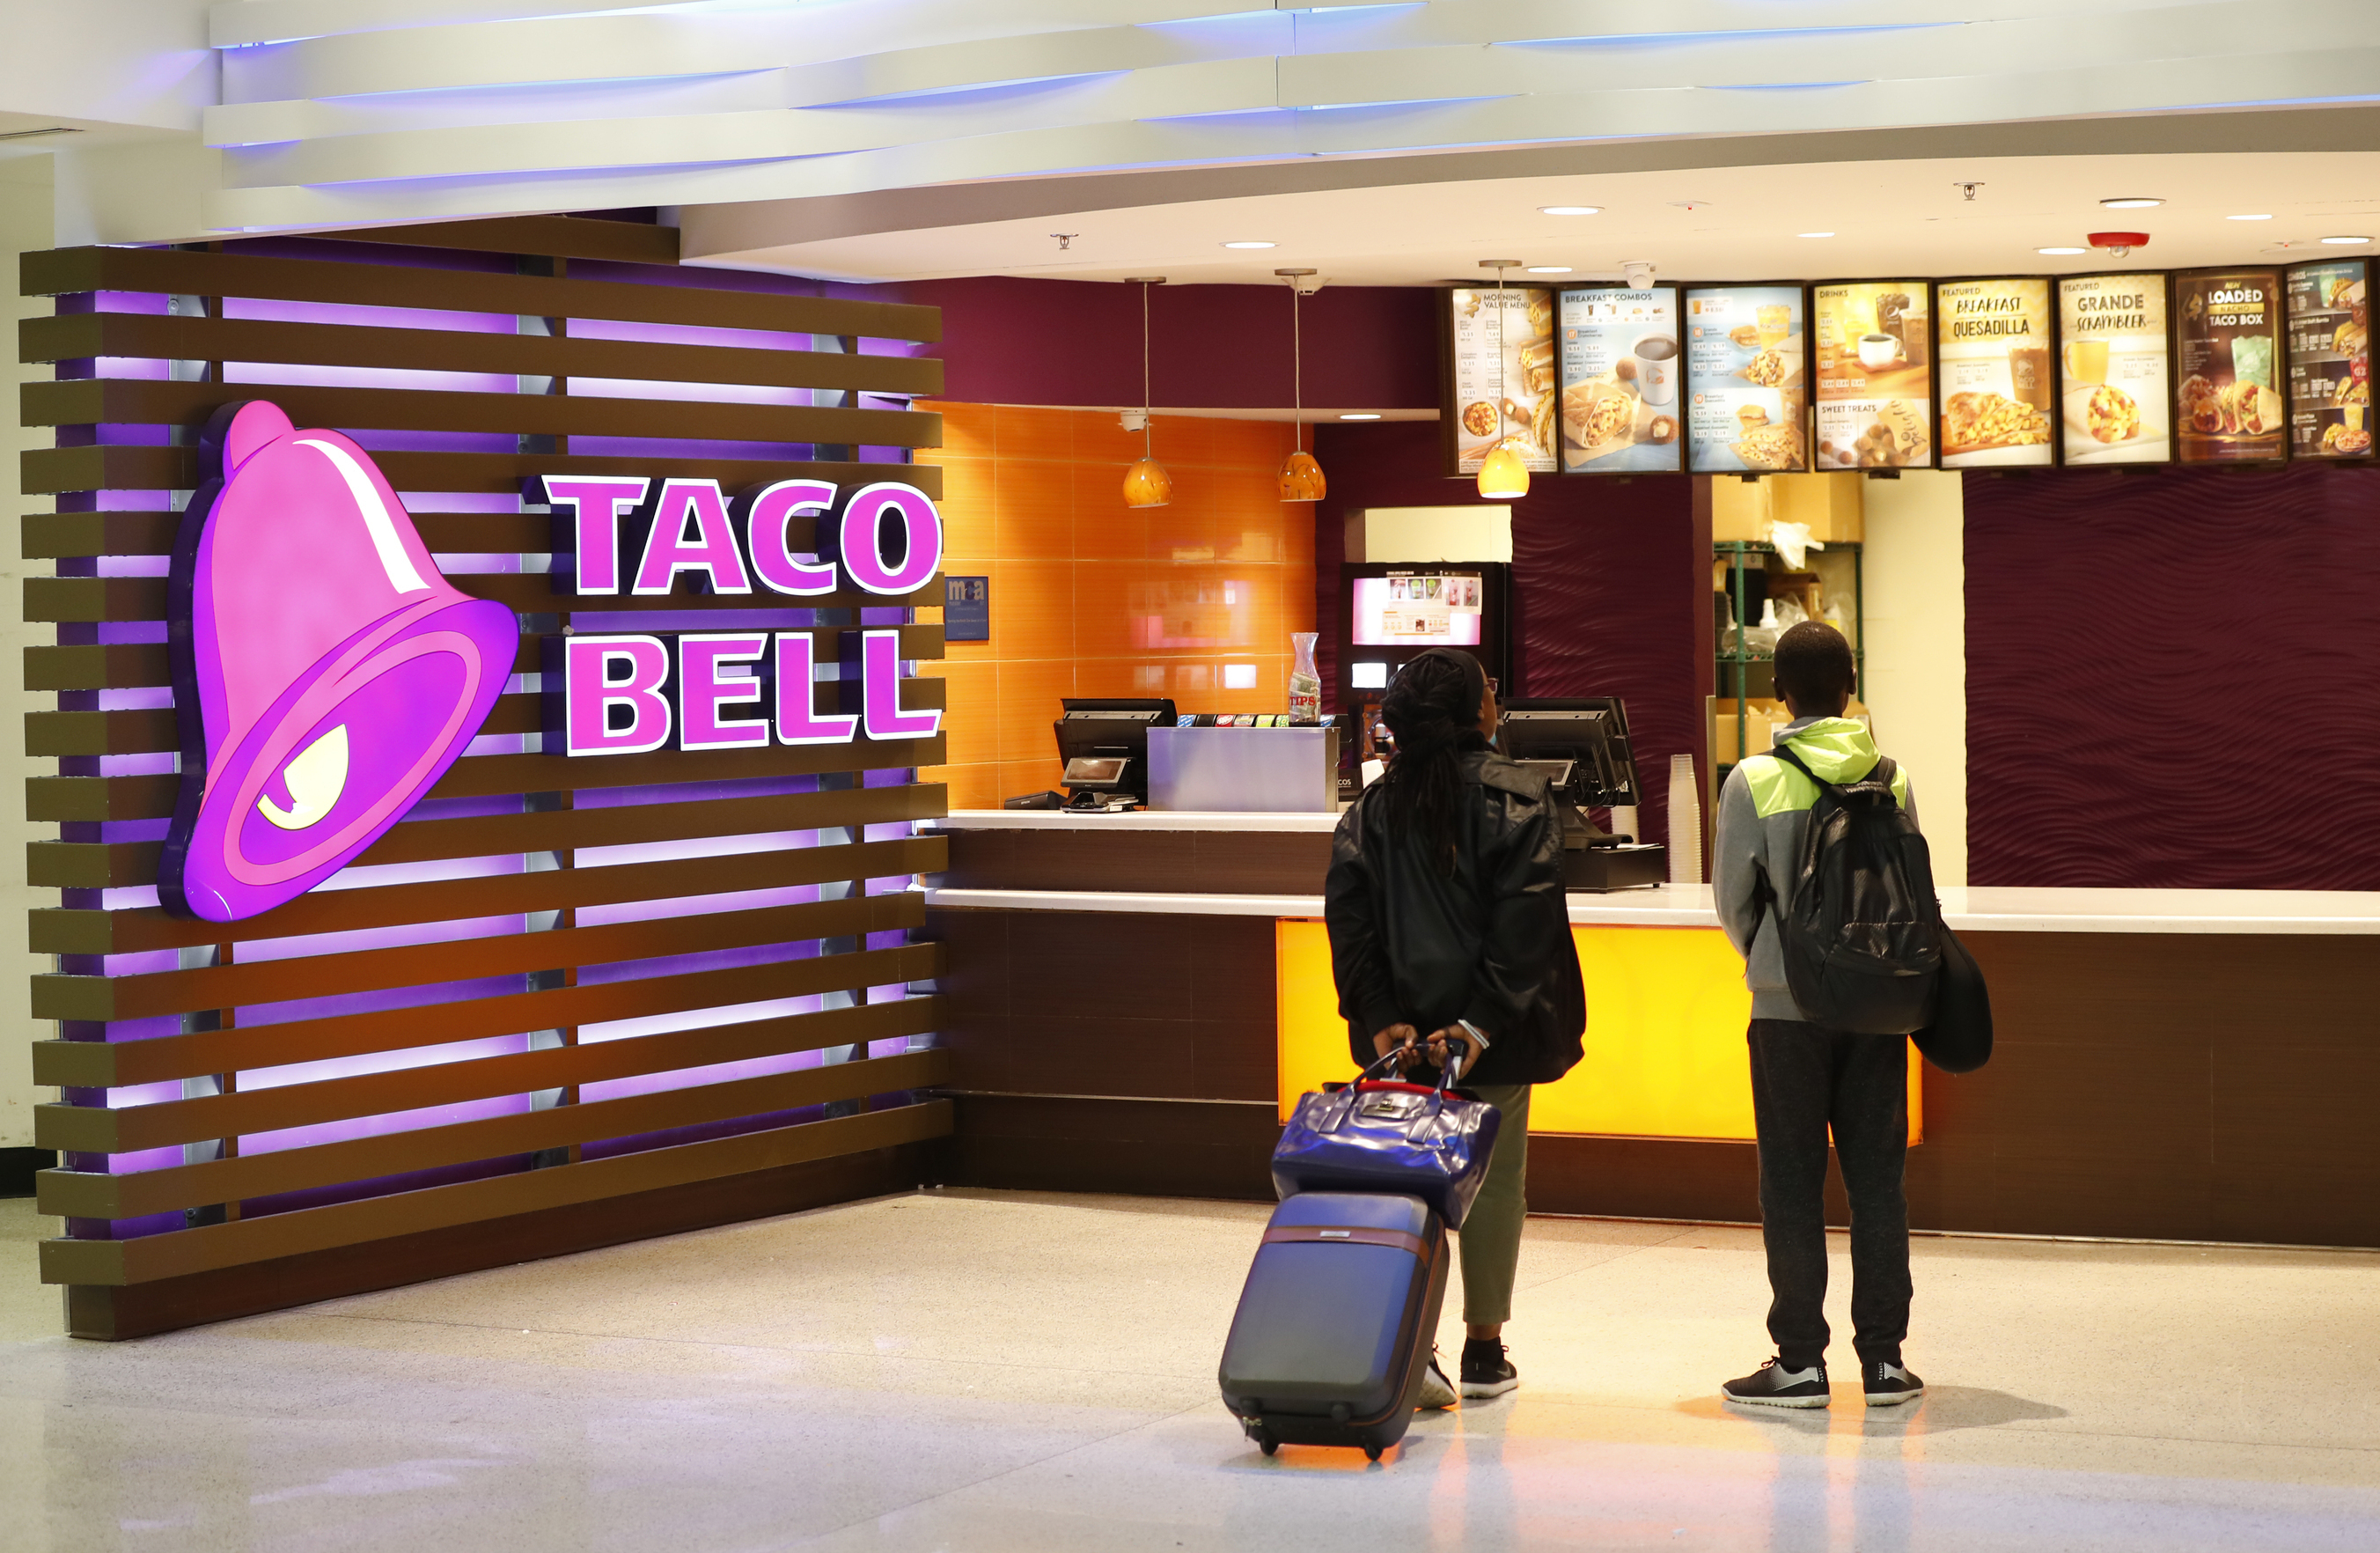 No, seriously. Who wants to check into the Taco Bell hotel?